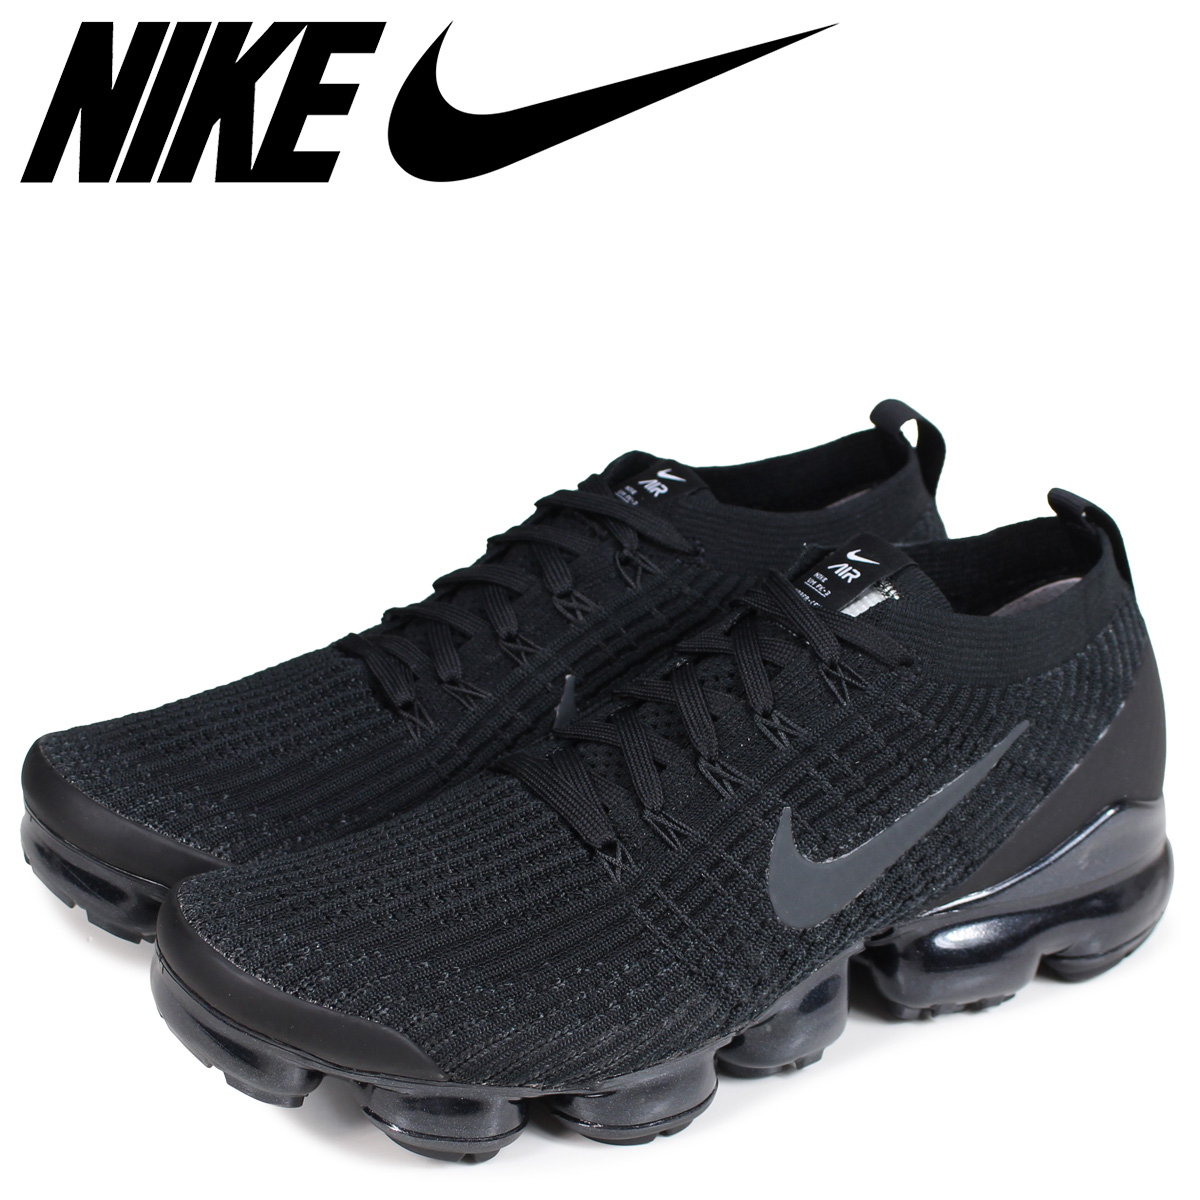 new arrival 2ca60 08470 NIKE Nike air vapor max fried food knit 3 sneakers men AIR VAPORMAX FLYKNIT  3 black black AJ6900-004